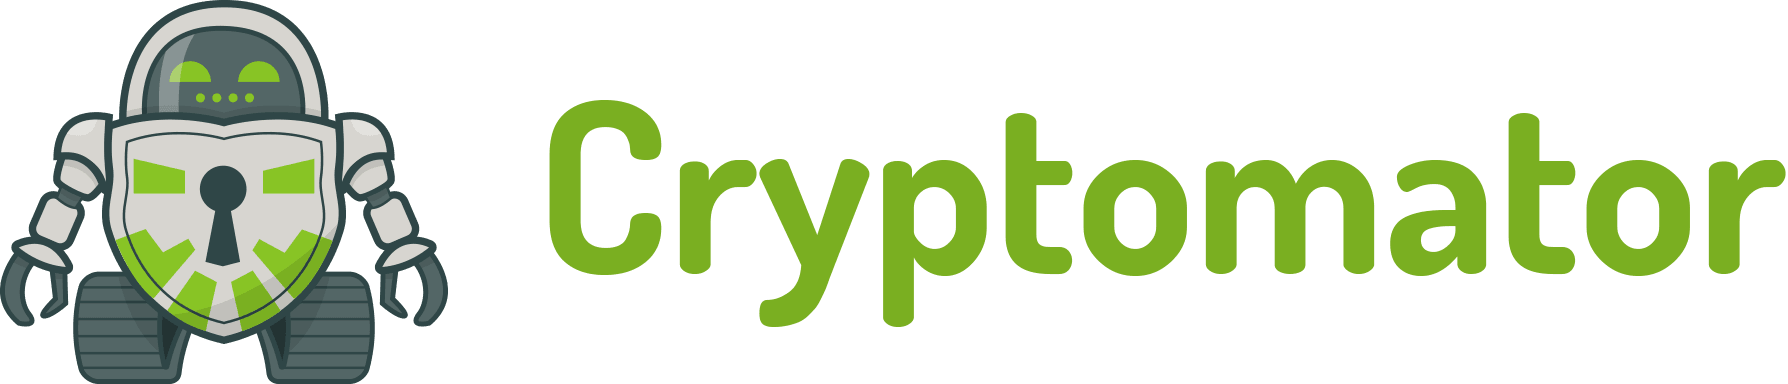 cryptomator-logo-text